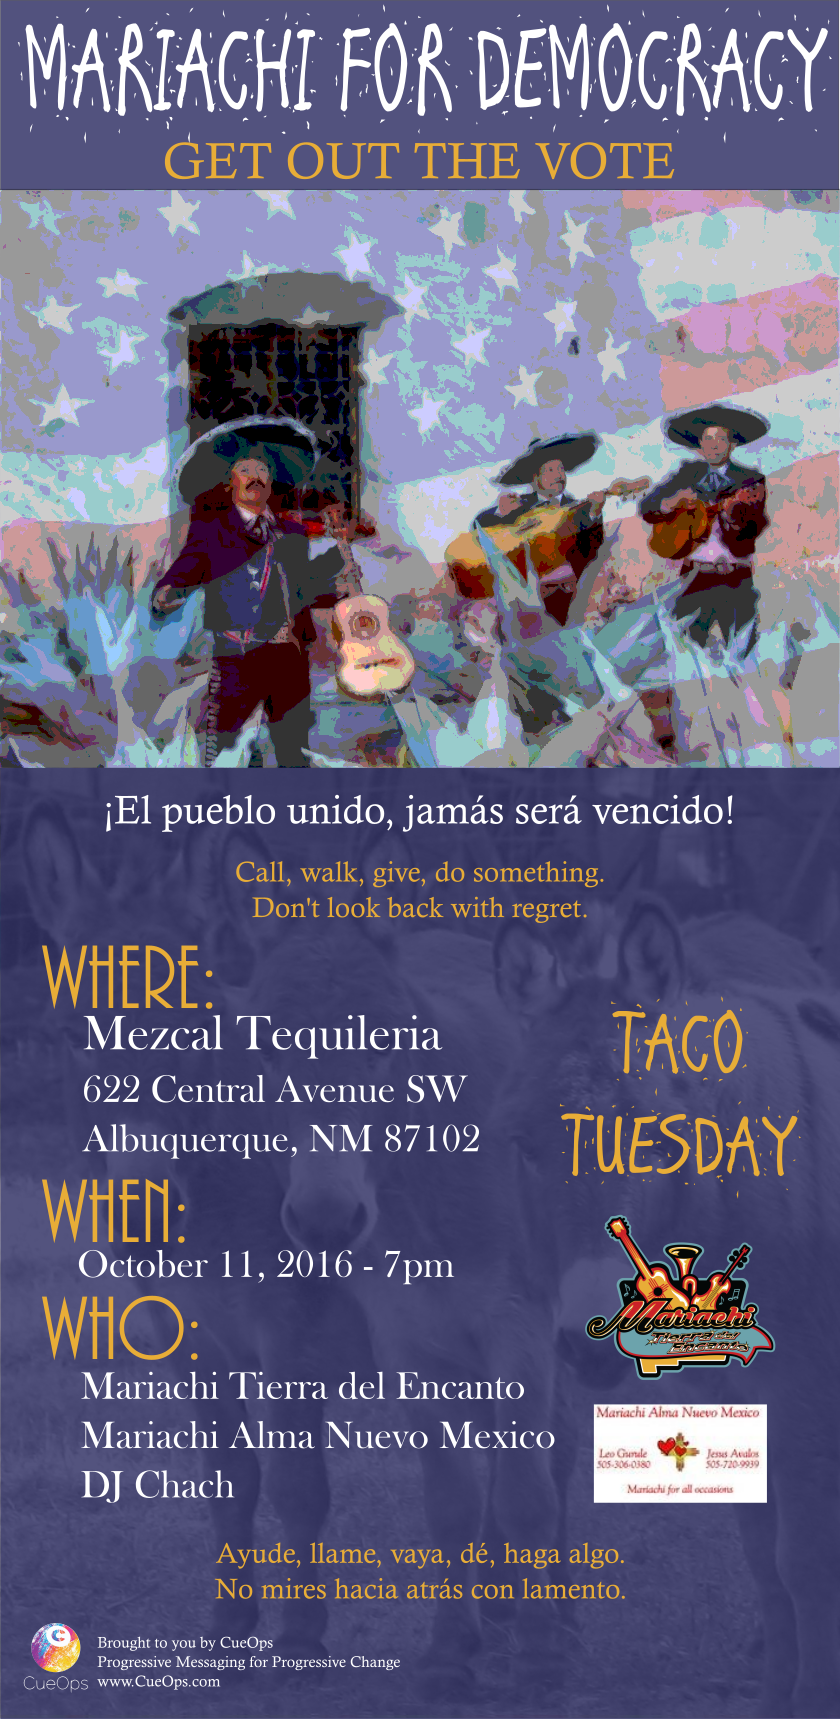 Mariachi for Democracy Event